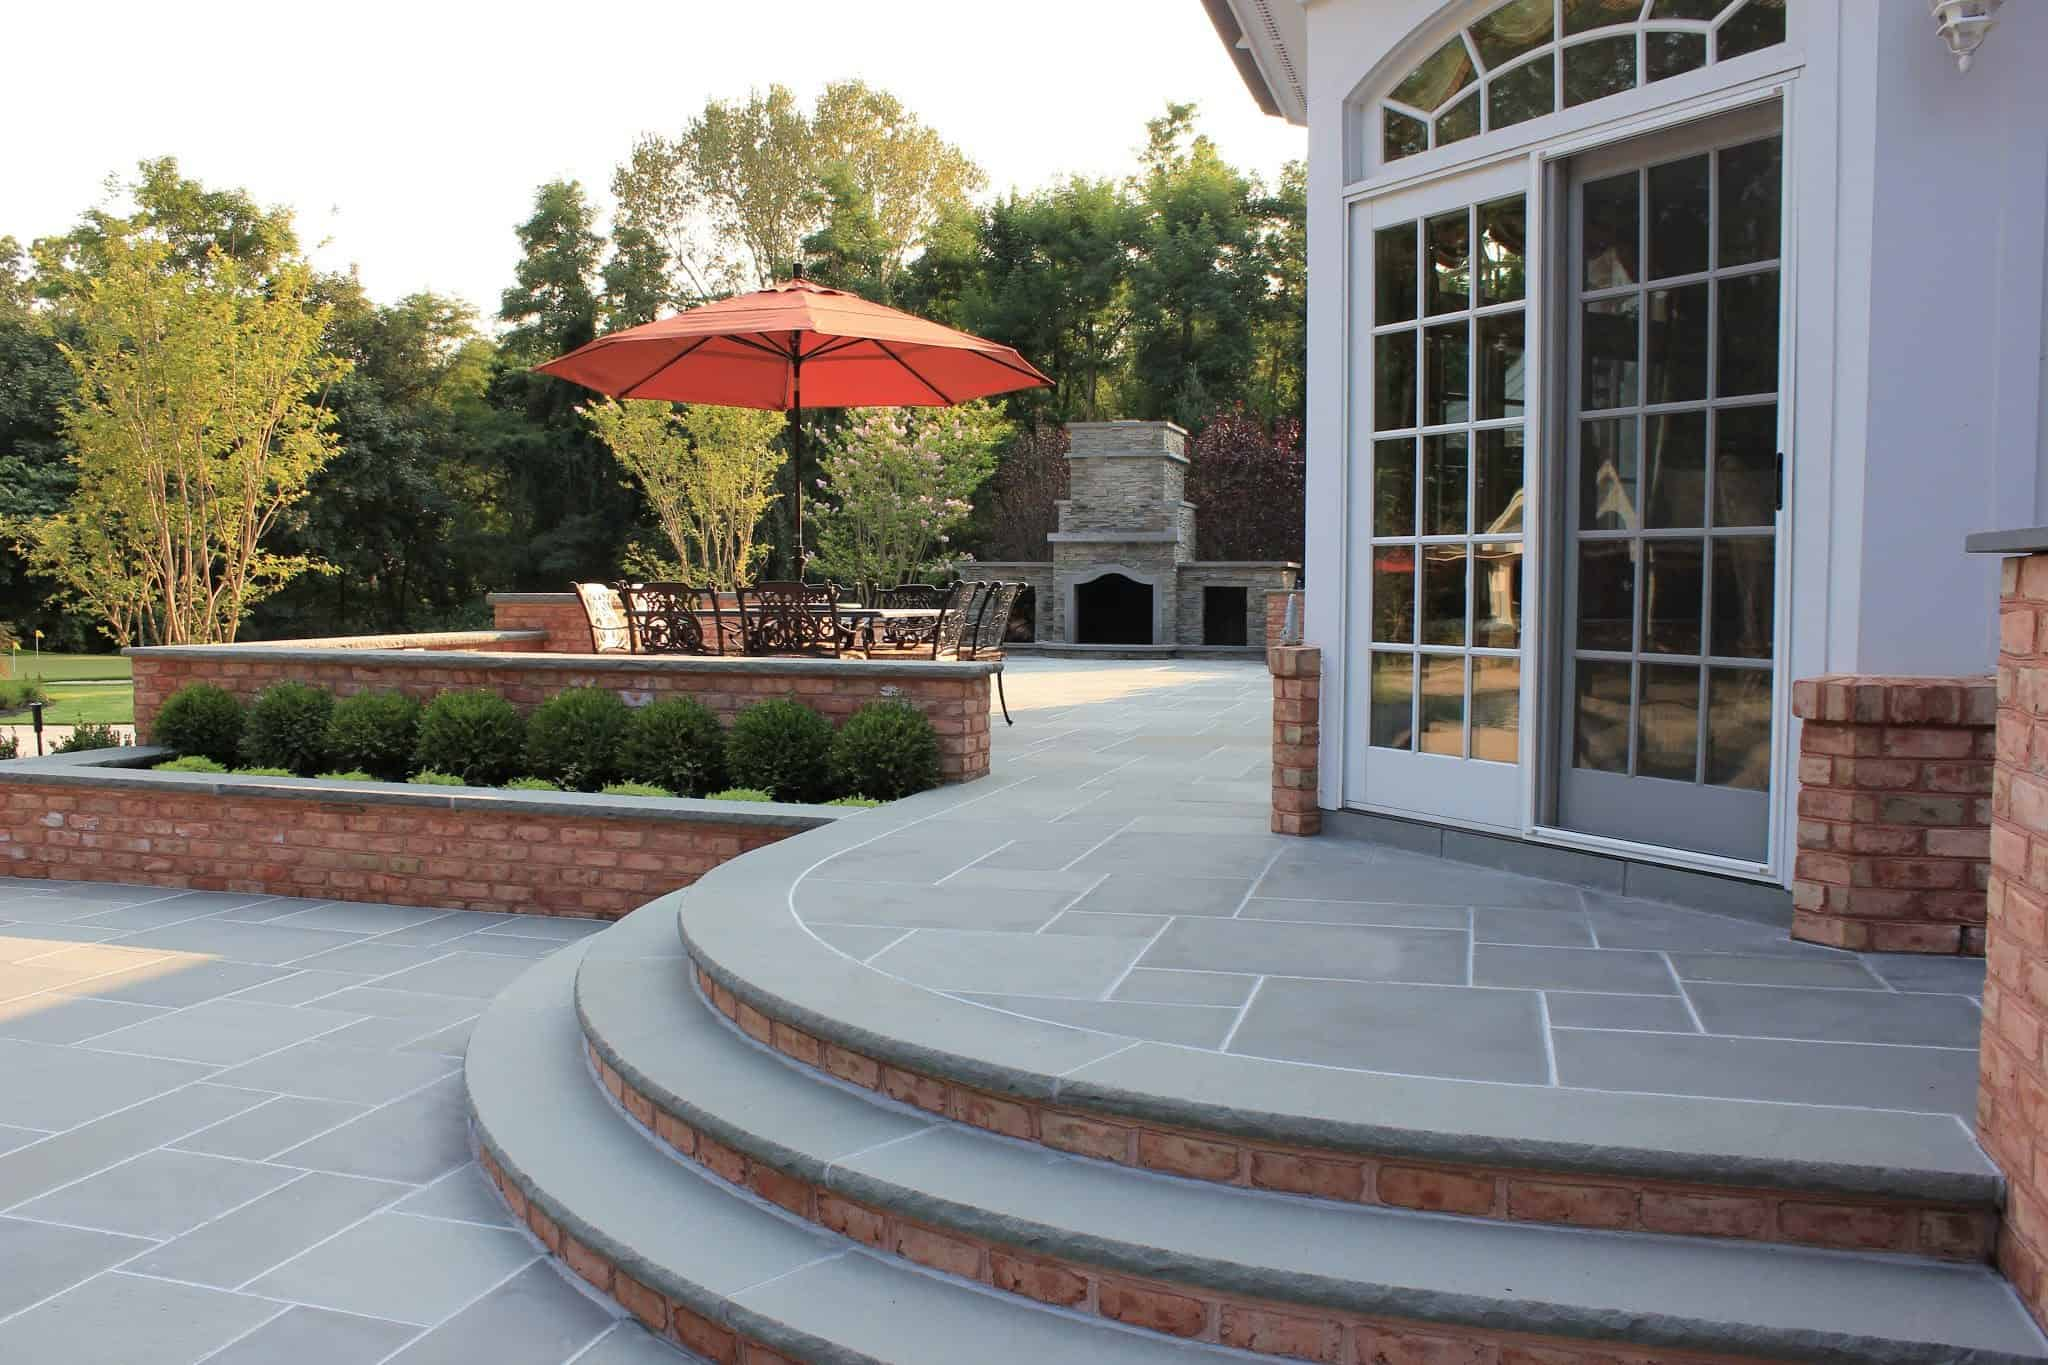 Bluestone Patio with Radial Bluestone Treads - Old Westbury, Long Island NY